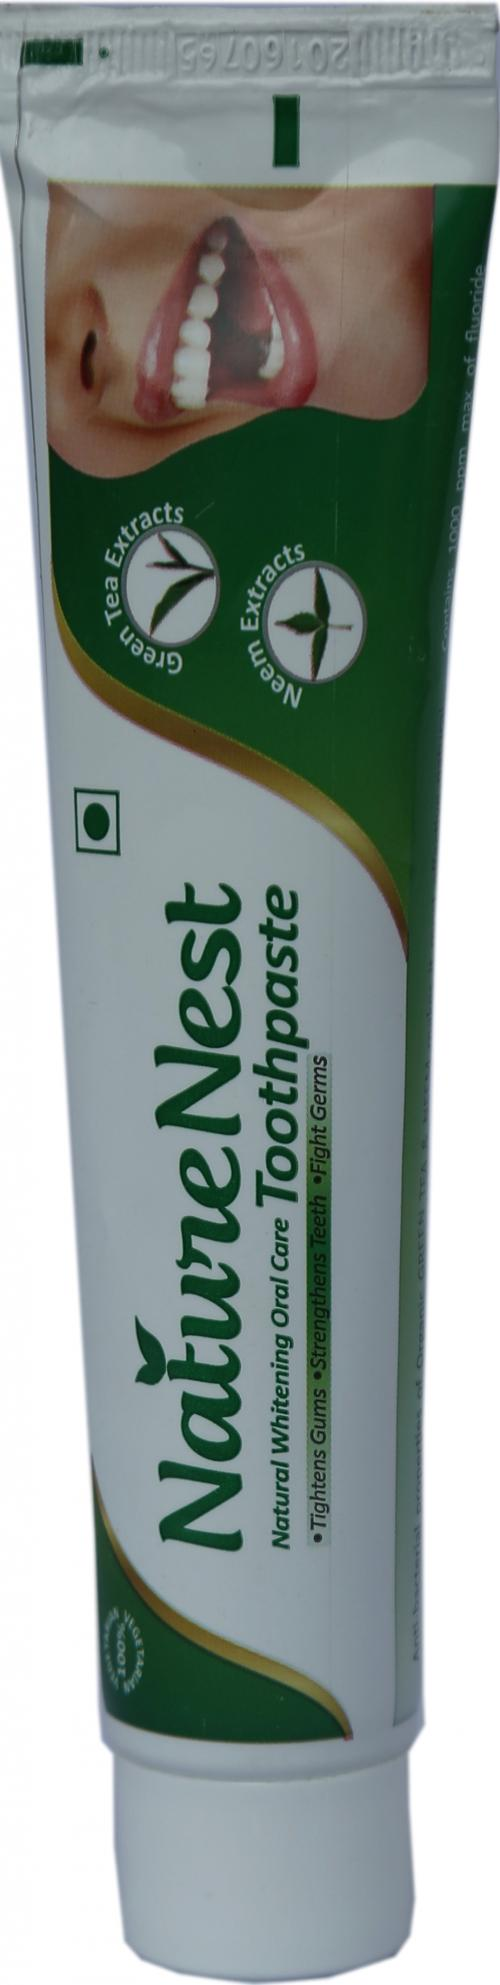 Nature Nest Toothpaste